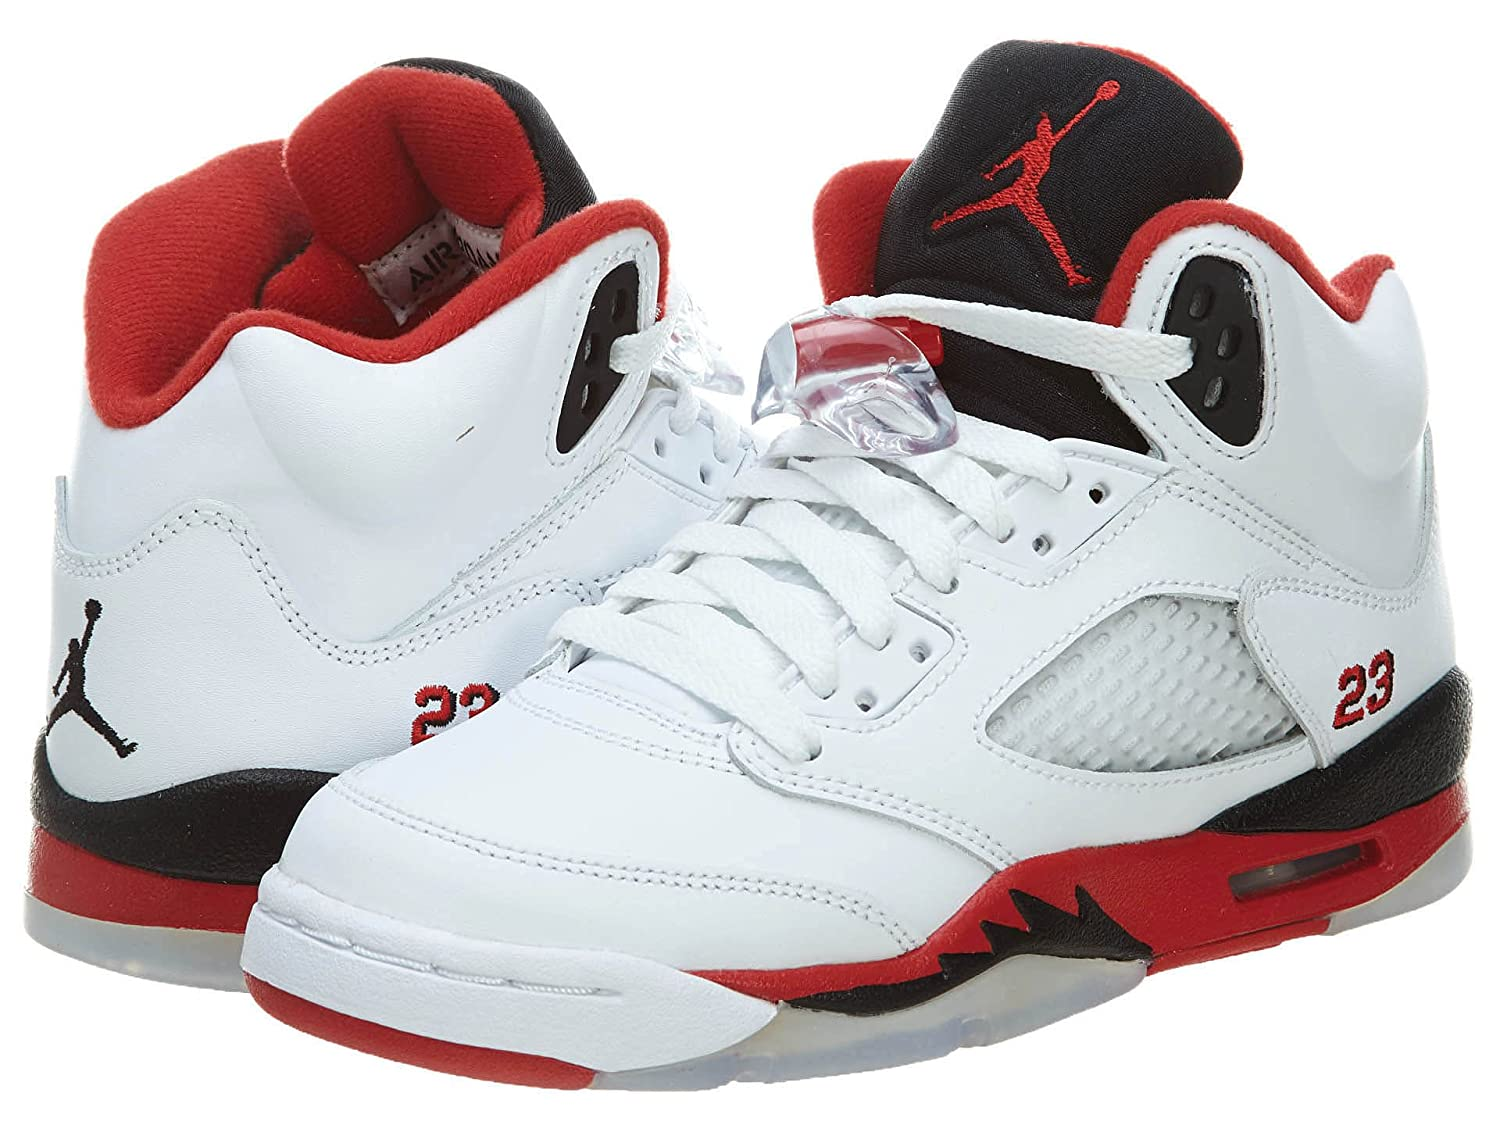 e27e7f7e2c7f Amazon.com | NIKE Air Jordan 5 Retro GS Fire Red Black Tongue (440888-120)  | Basketball